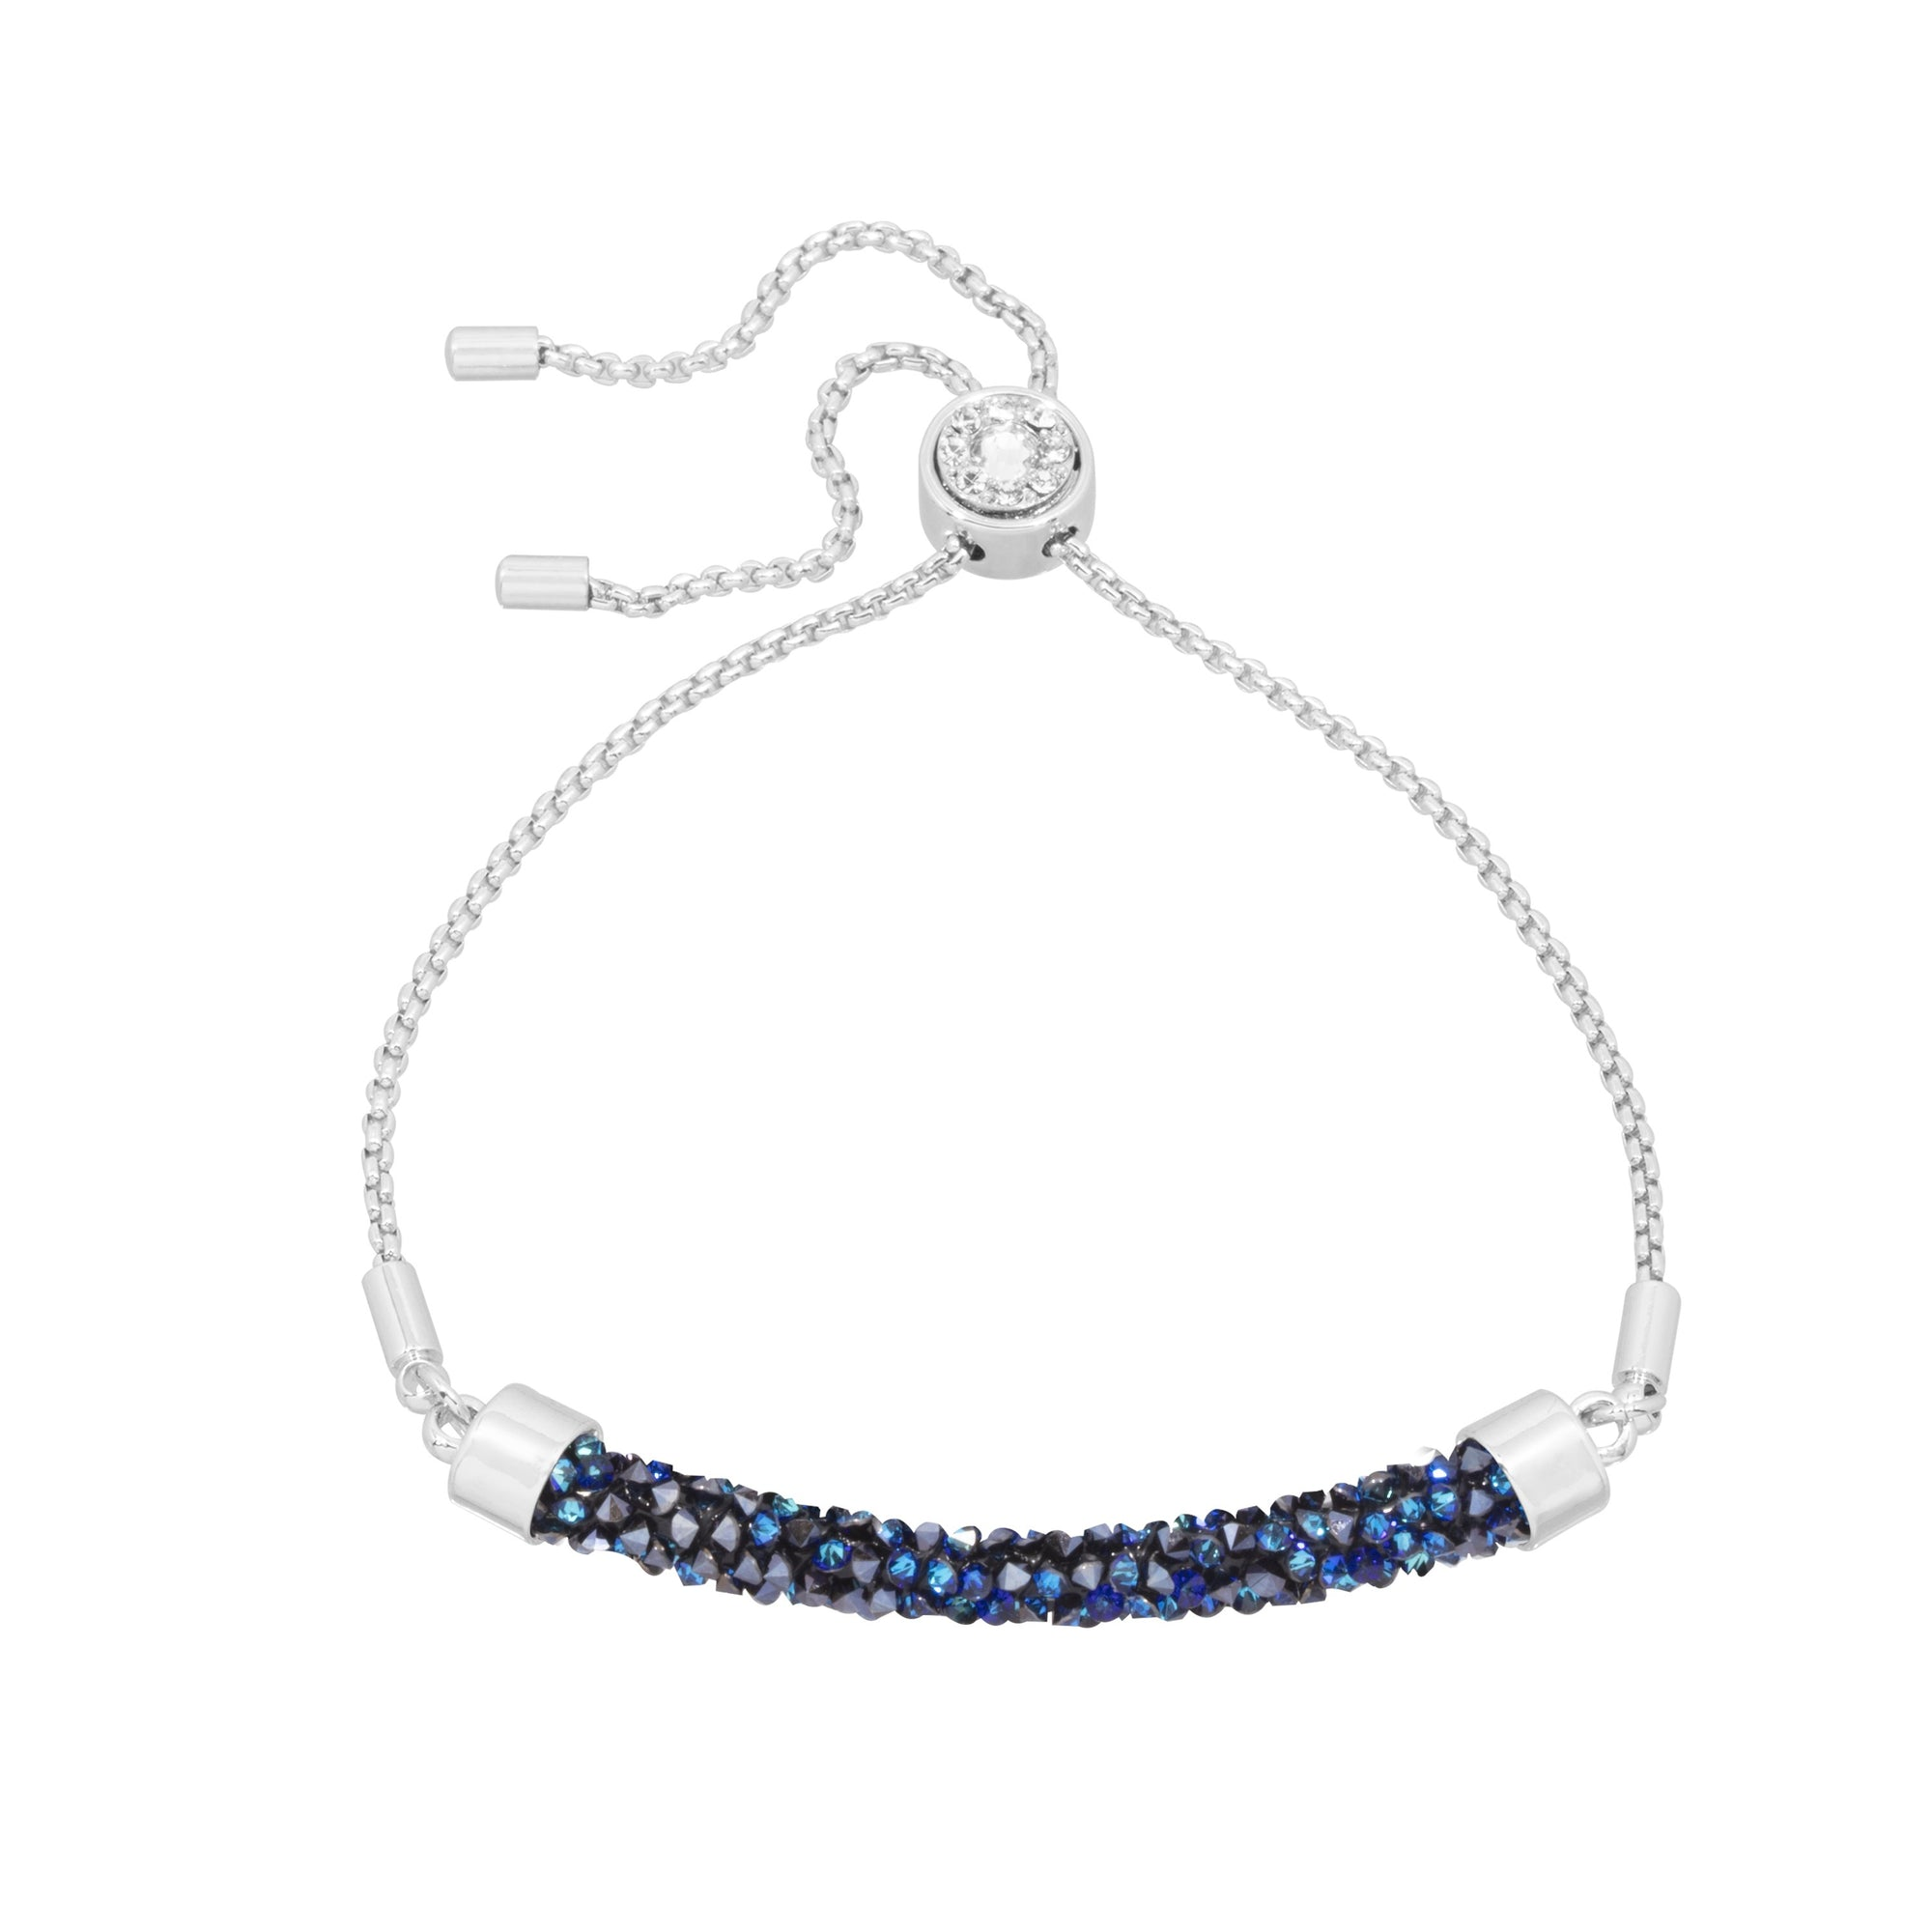 CONSTELLATION CARINA SLIDER BRACELET BERMUDA BLUE Constellation FOREVER